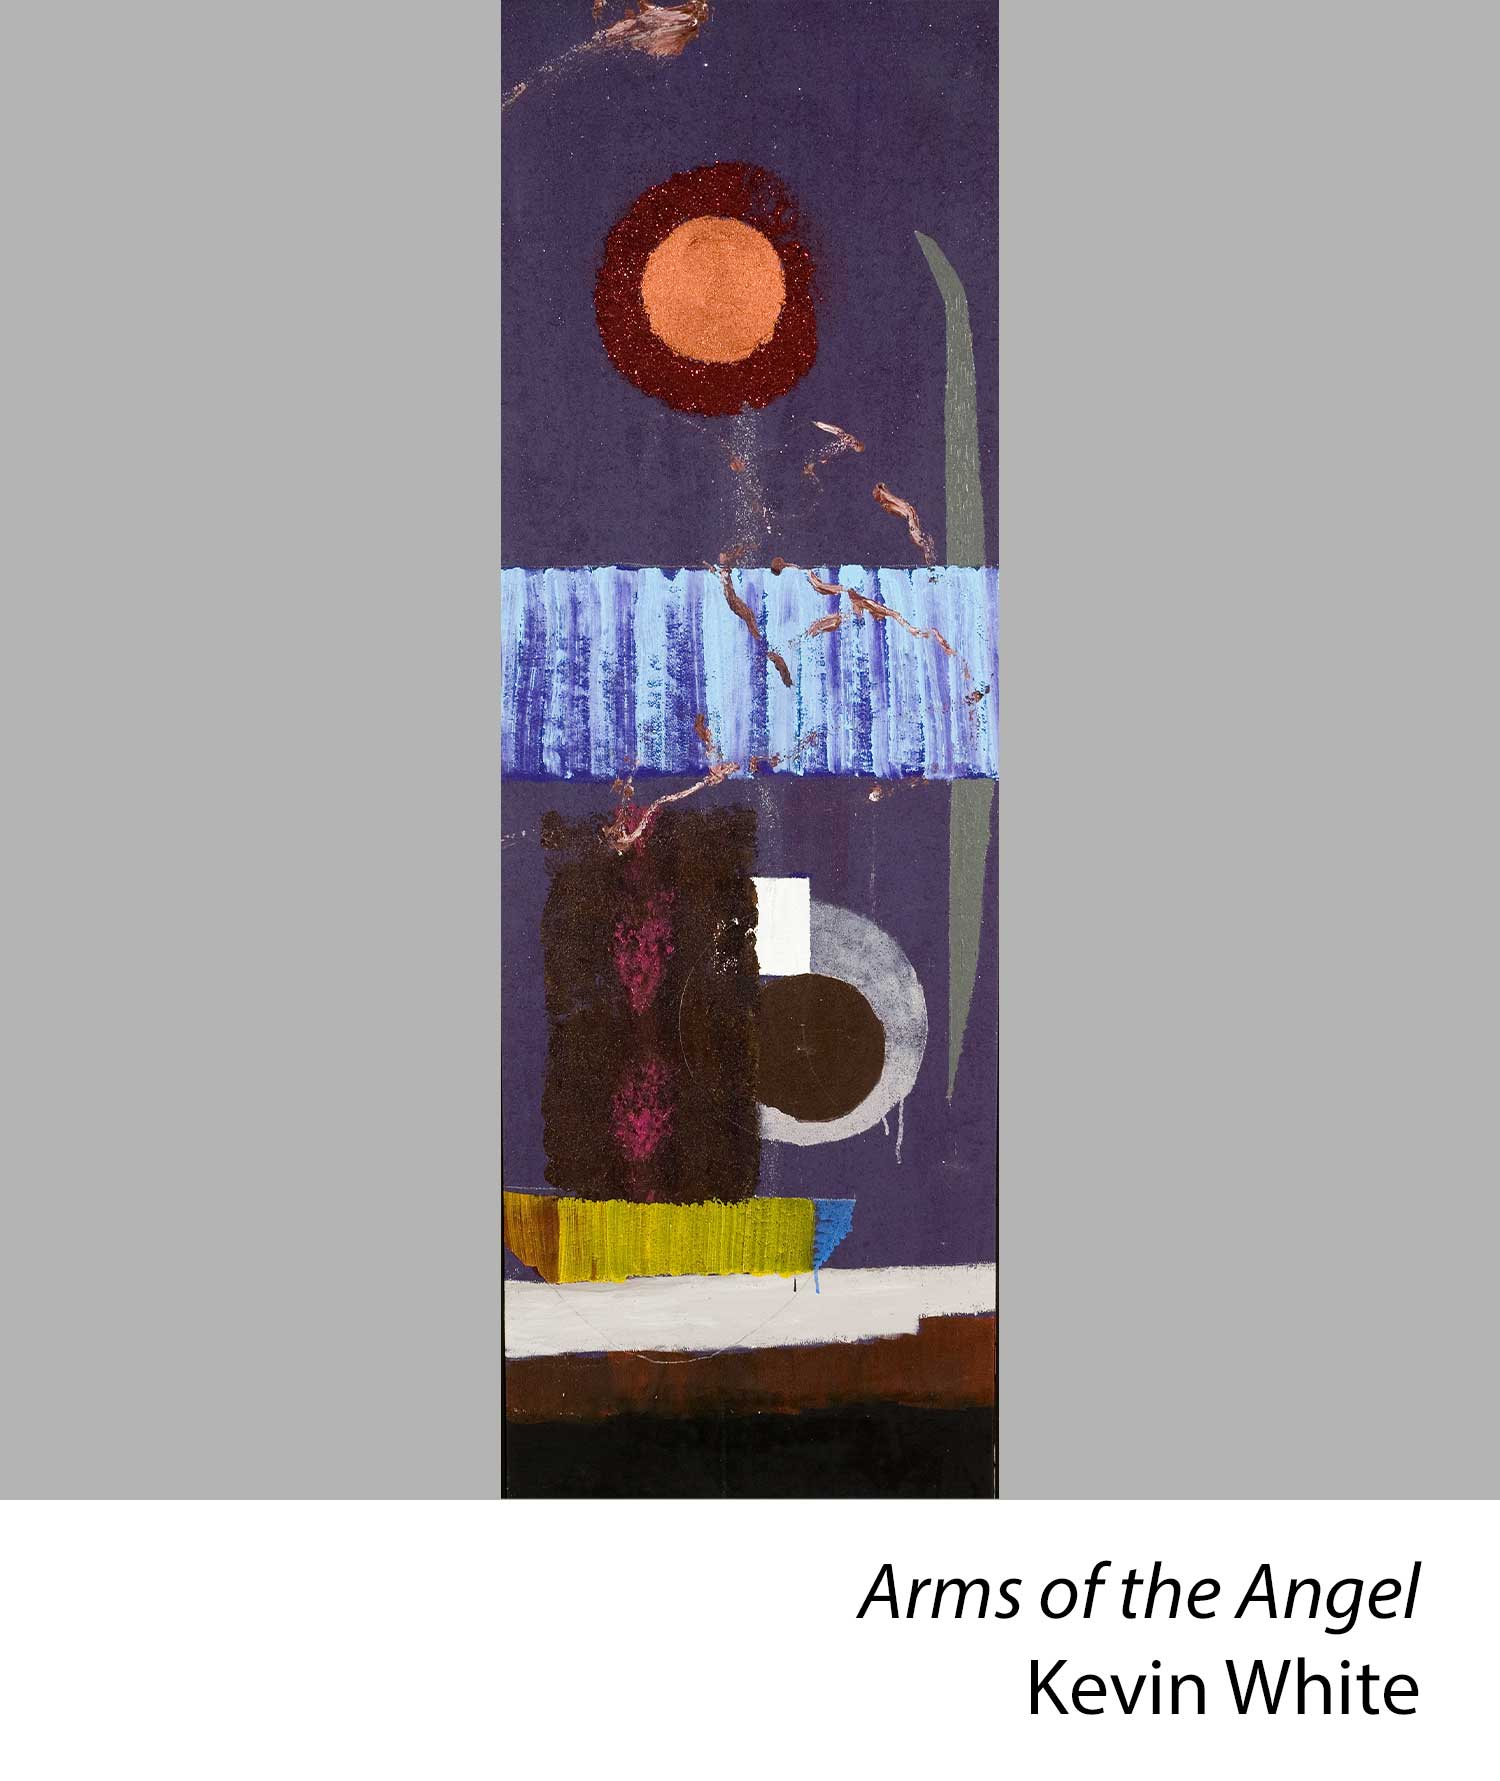 Arms of the Angel by Kevin White